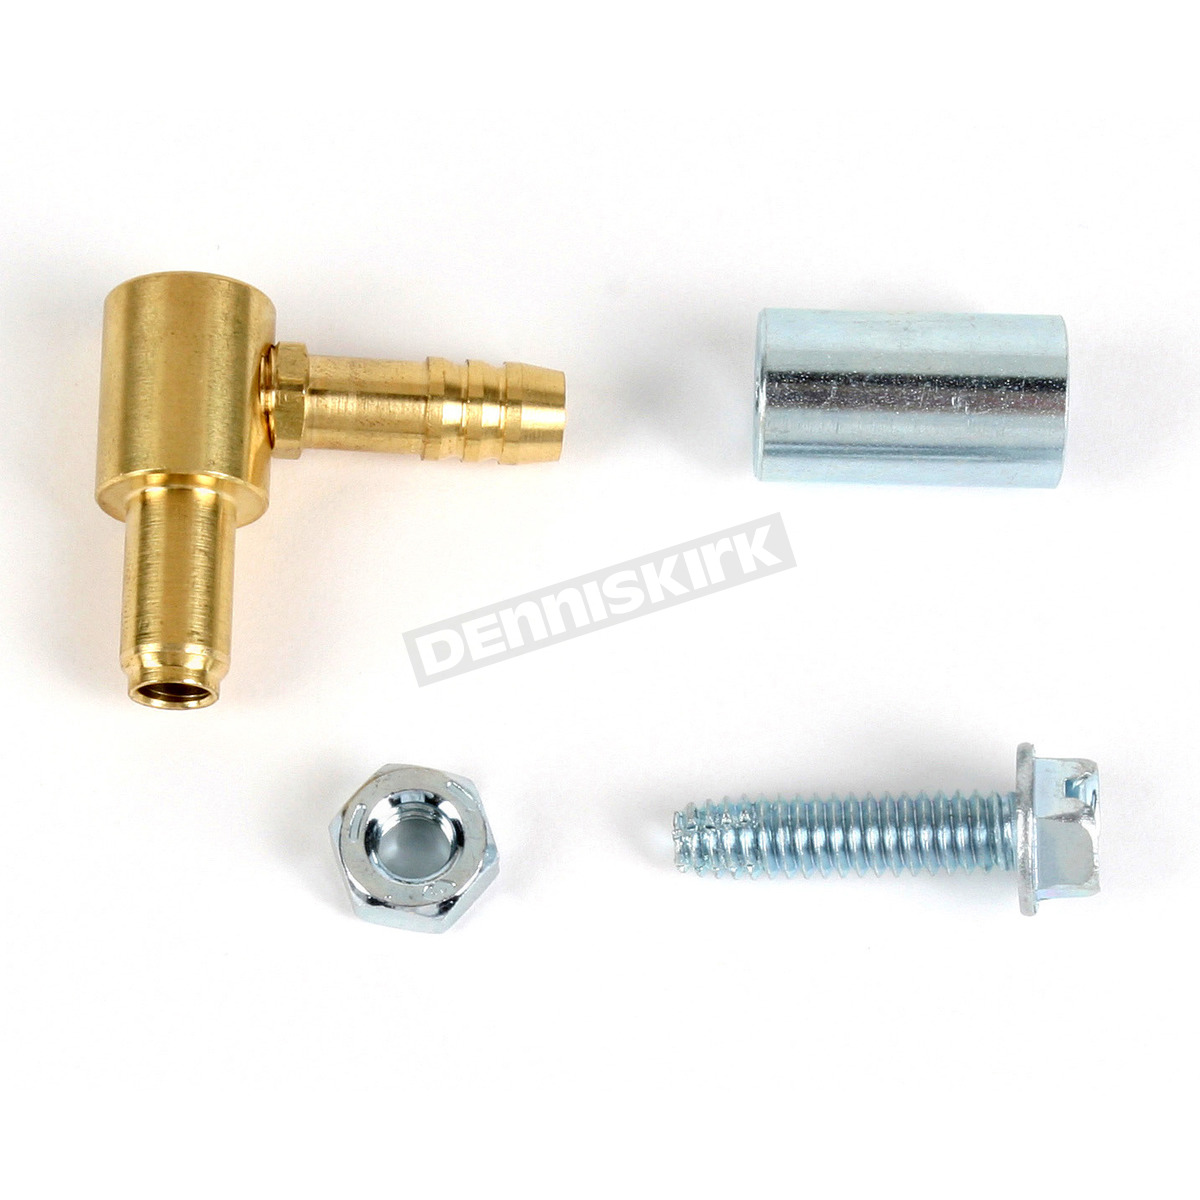 Single Outlet Brass Hi-Flow Fuel Nipple for 76-06 Butterfly and CV Keihin  Carburetors - CVN1